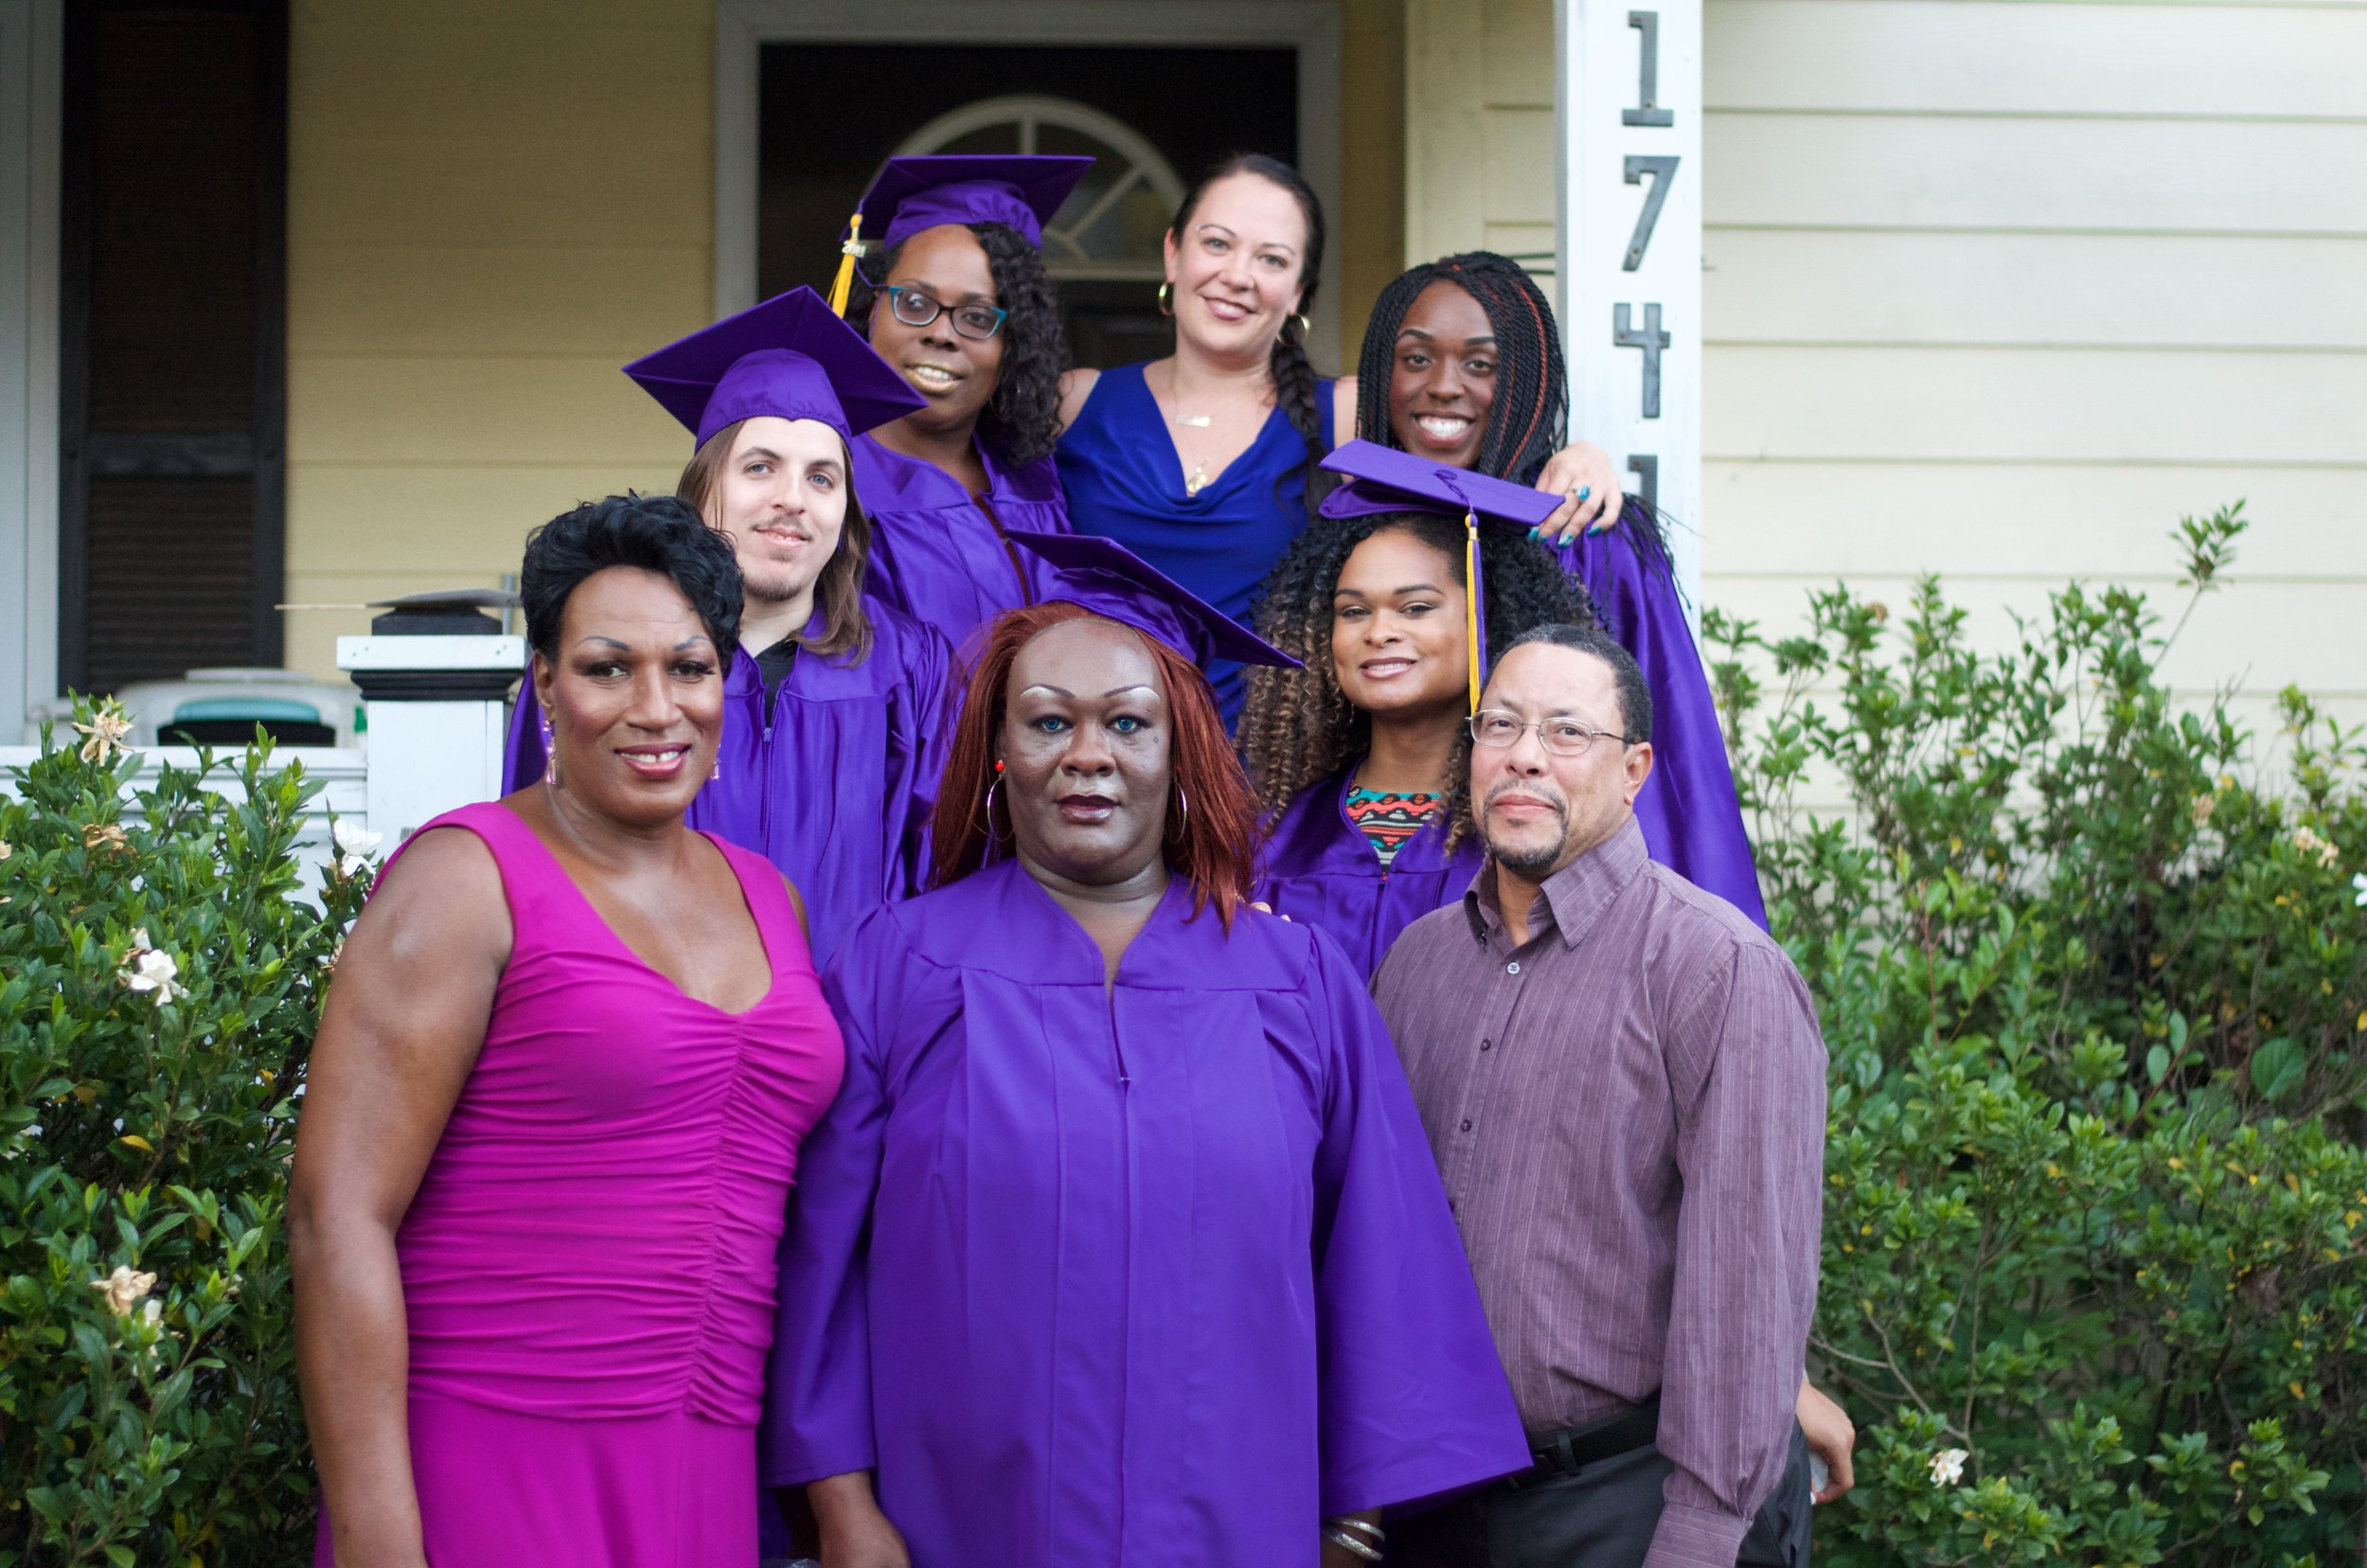 2015 Cohort: DJ, Raquel Willis, Miss Lynn Morrison, Necaela Penn, and TK Hotep (not pictured)